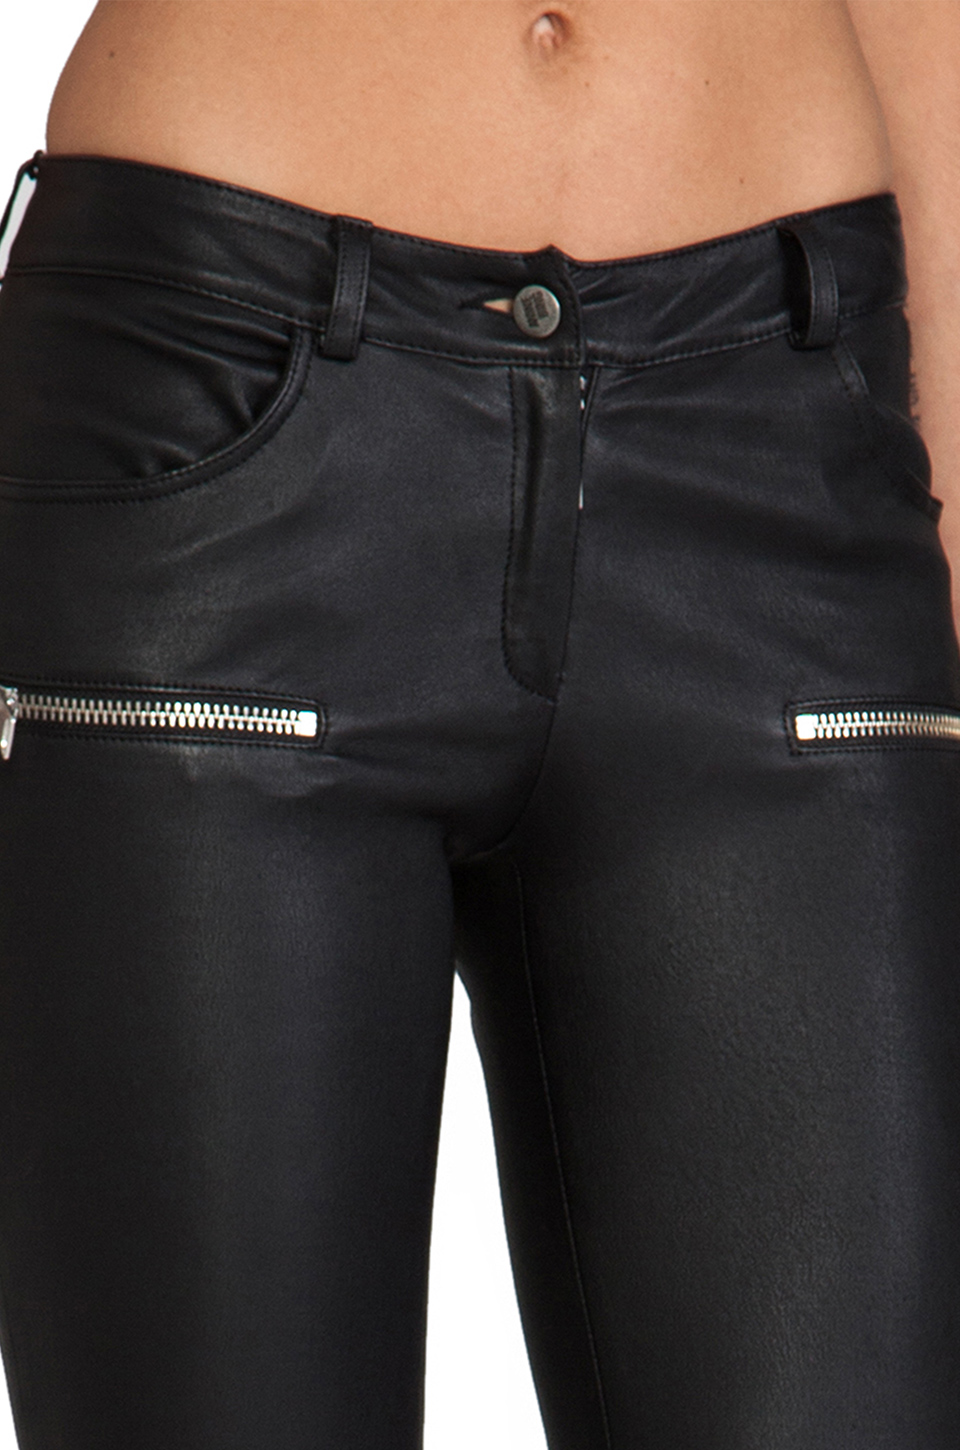 ANINE BING Leather Skinny Pant in Black